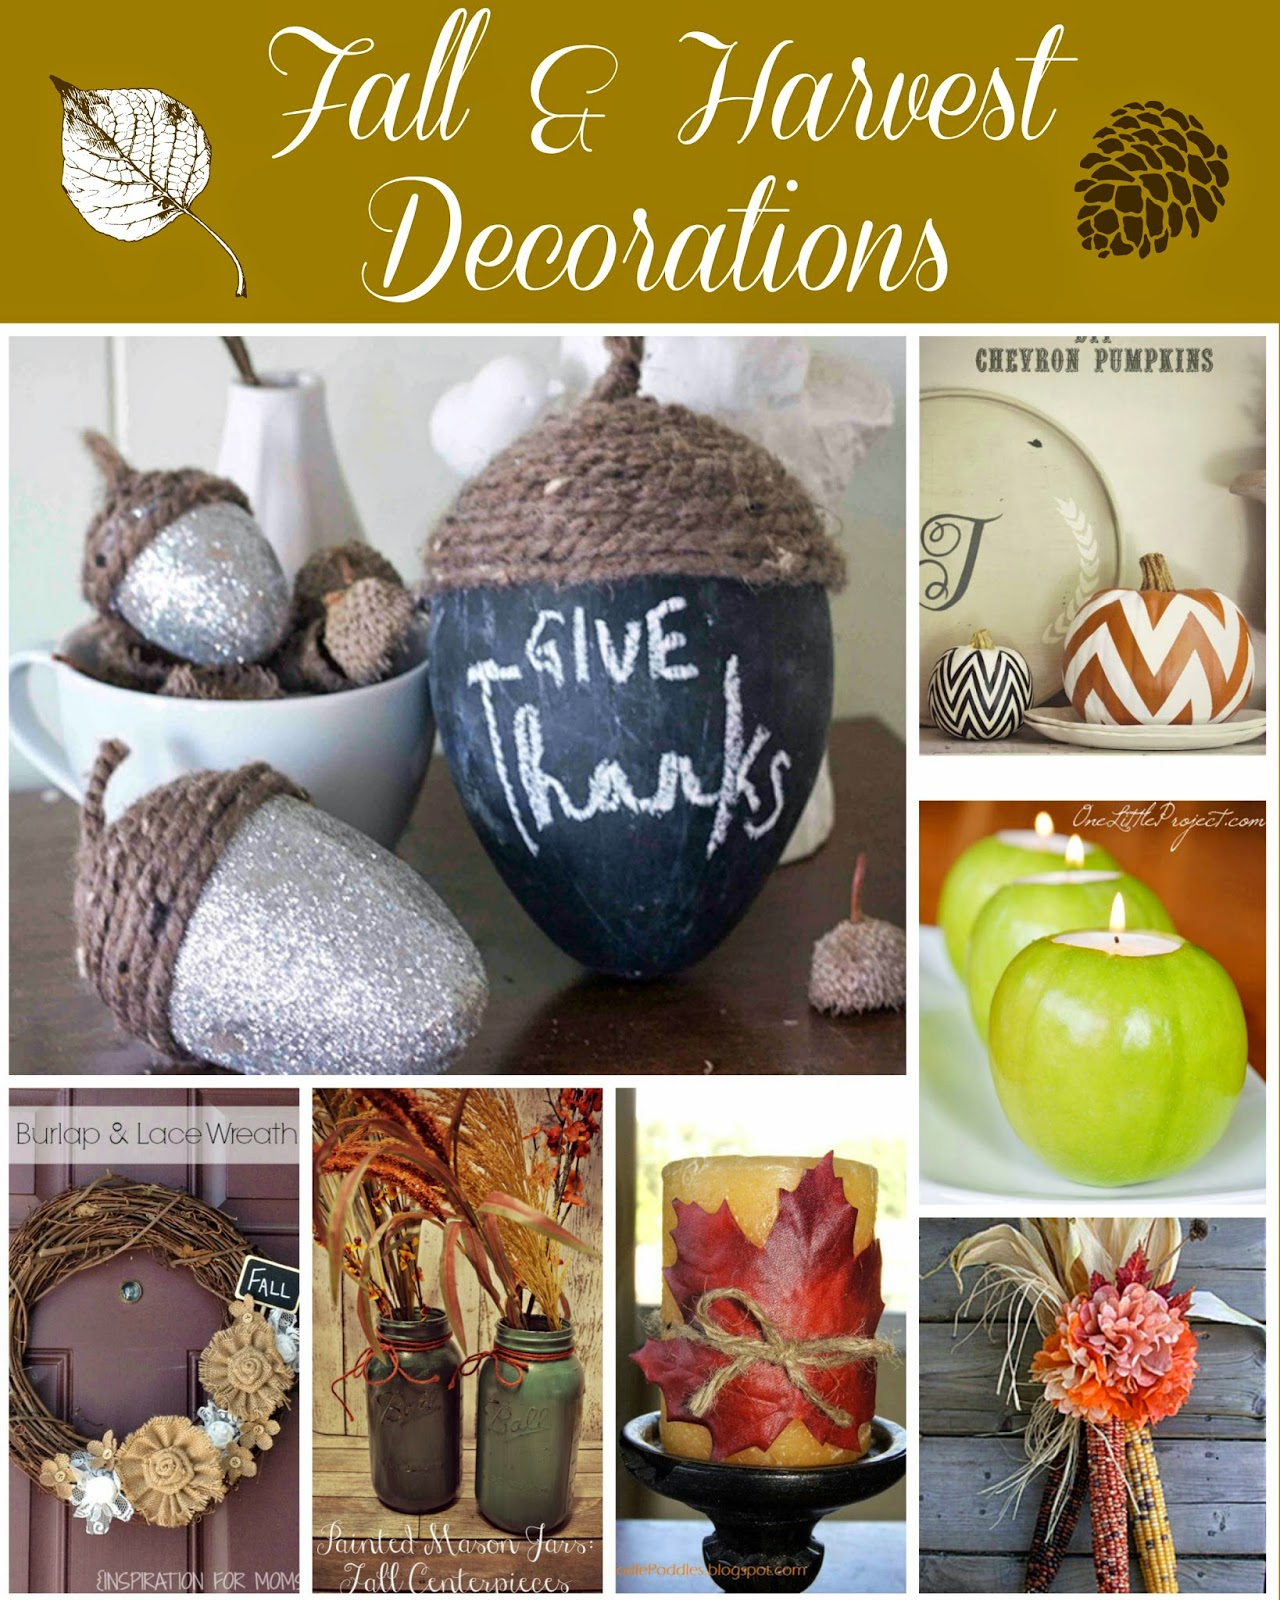 harvest home decor diy ideas easy fall decorations harvest decorations diy fall decorations - Fall Harvest Decor